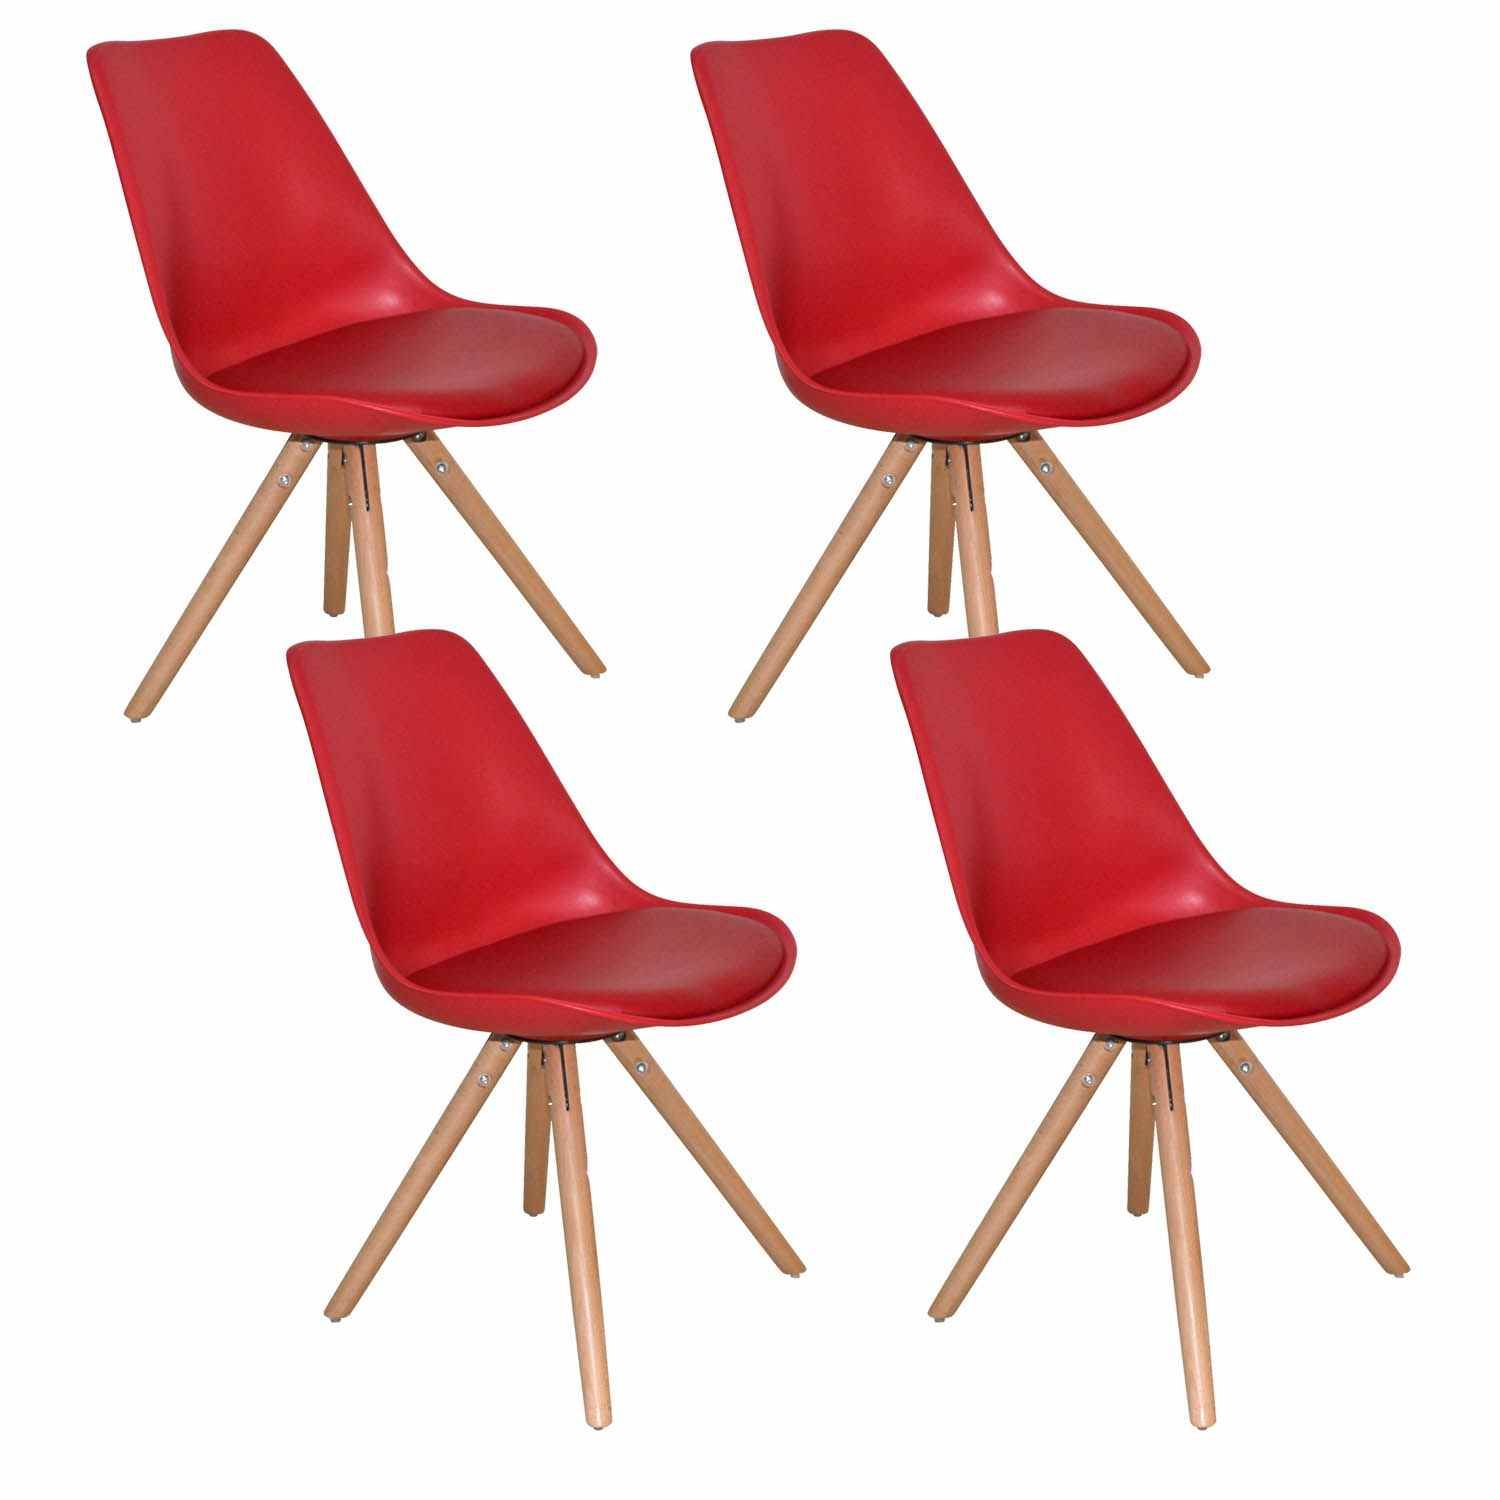 Deco in paris lot de 4 chaises design rouge velta velta rouge x4 - Chaises sejour design ...